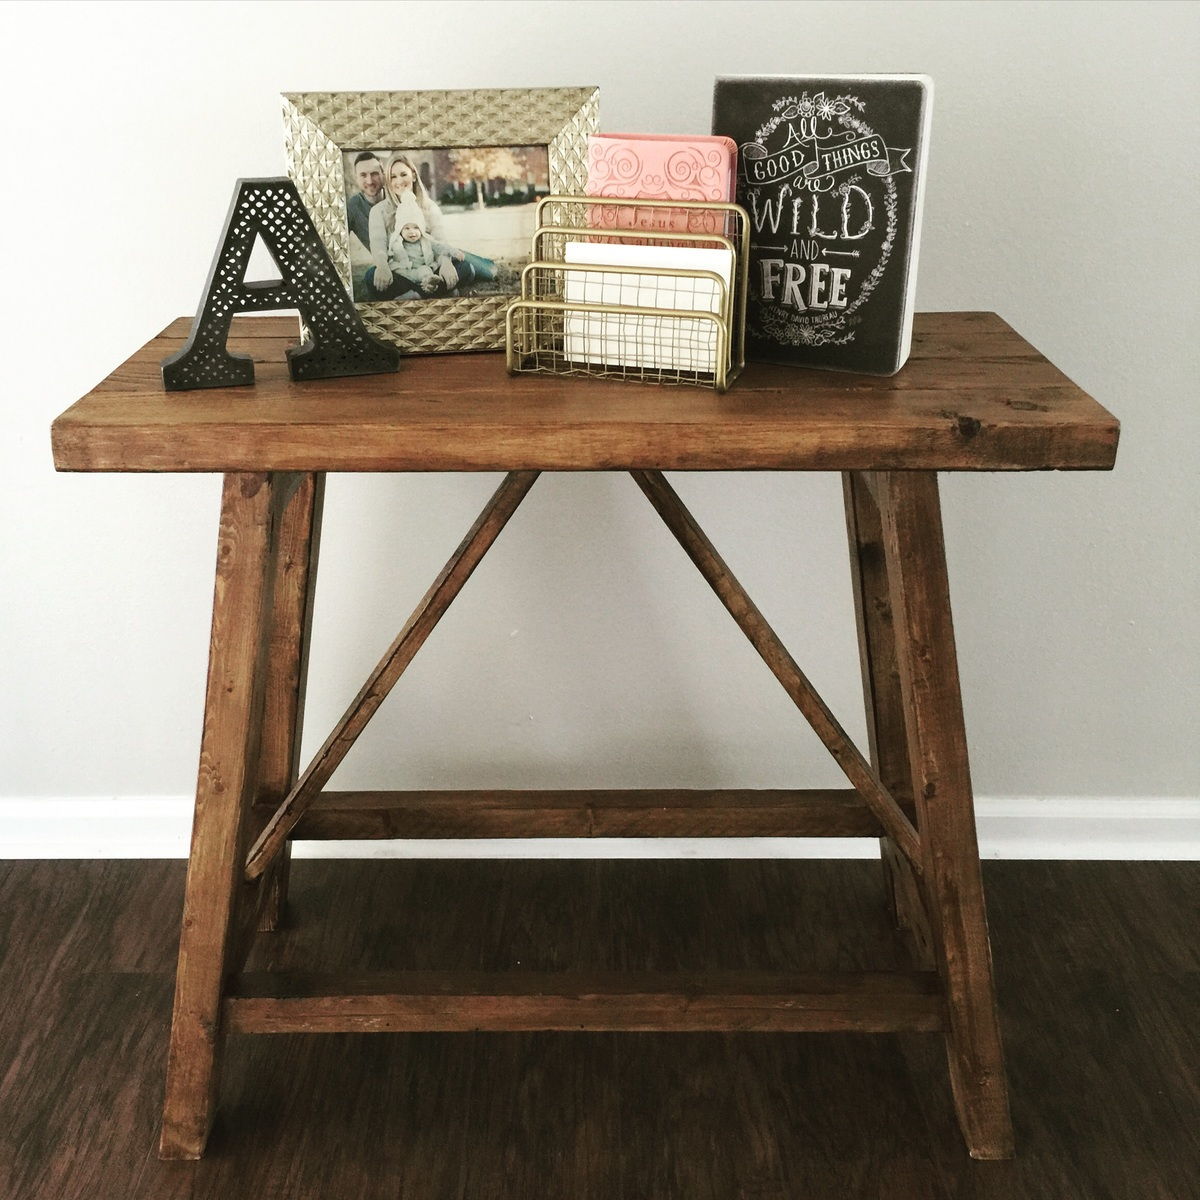 Pottery Barn Inspired Truss End Tables - DIY